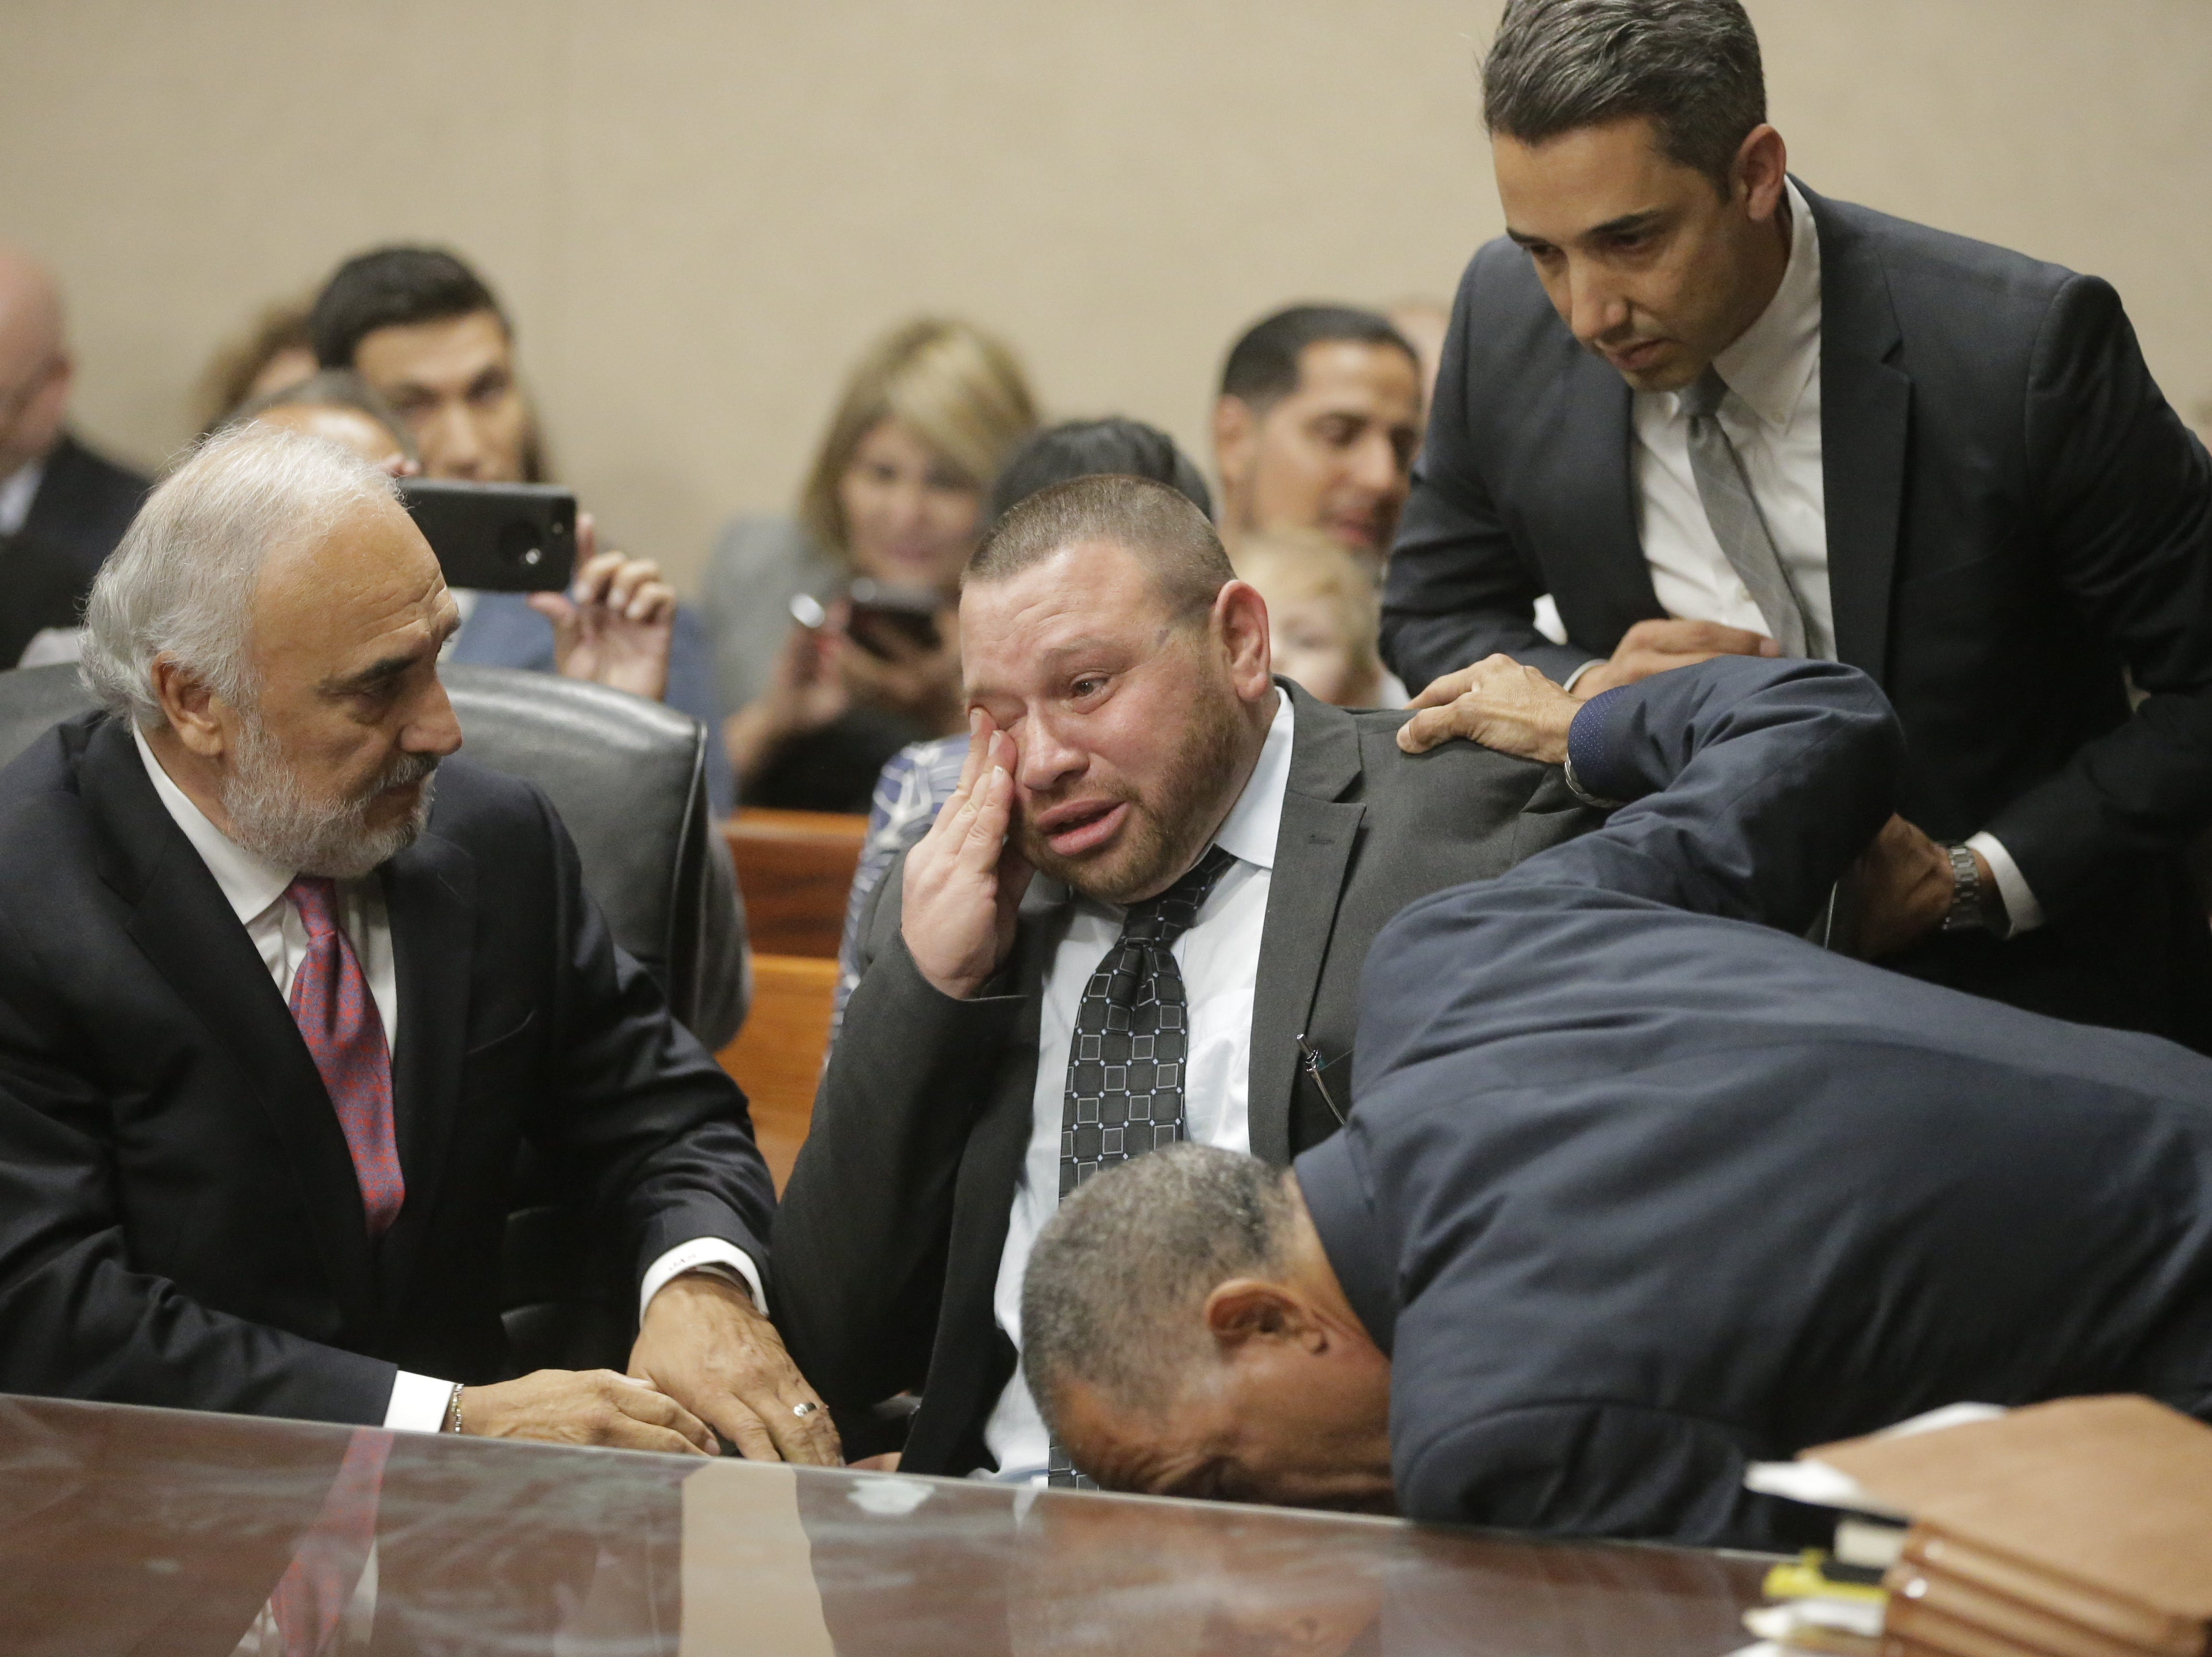 Not guilty: Daniel Villegas reacts after the verdict is ready in his third capital murder trial.